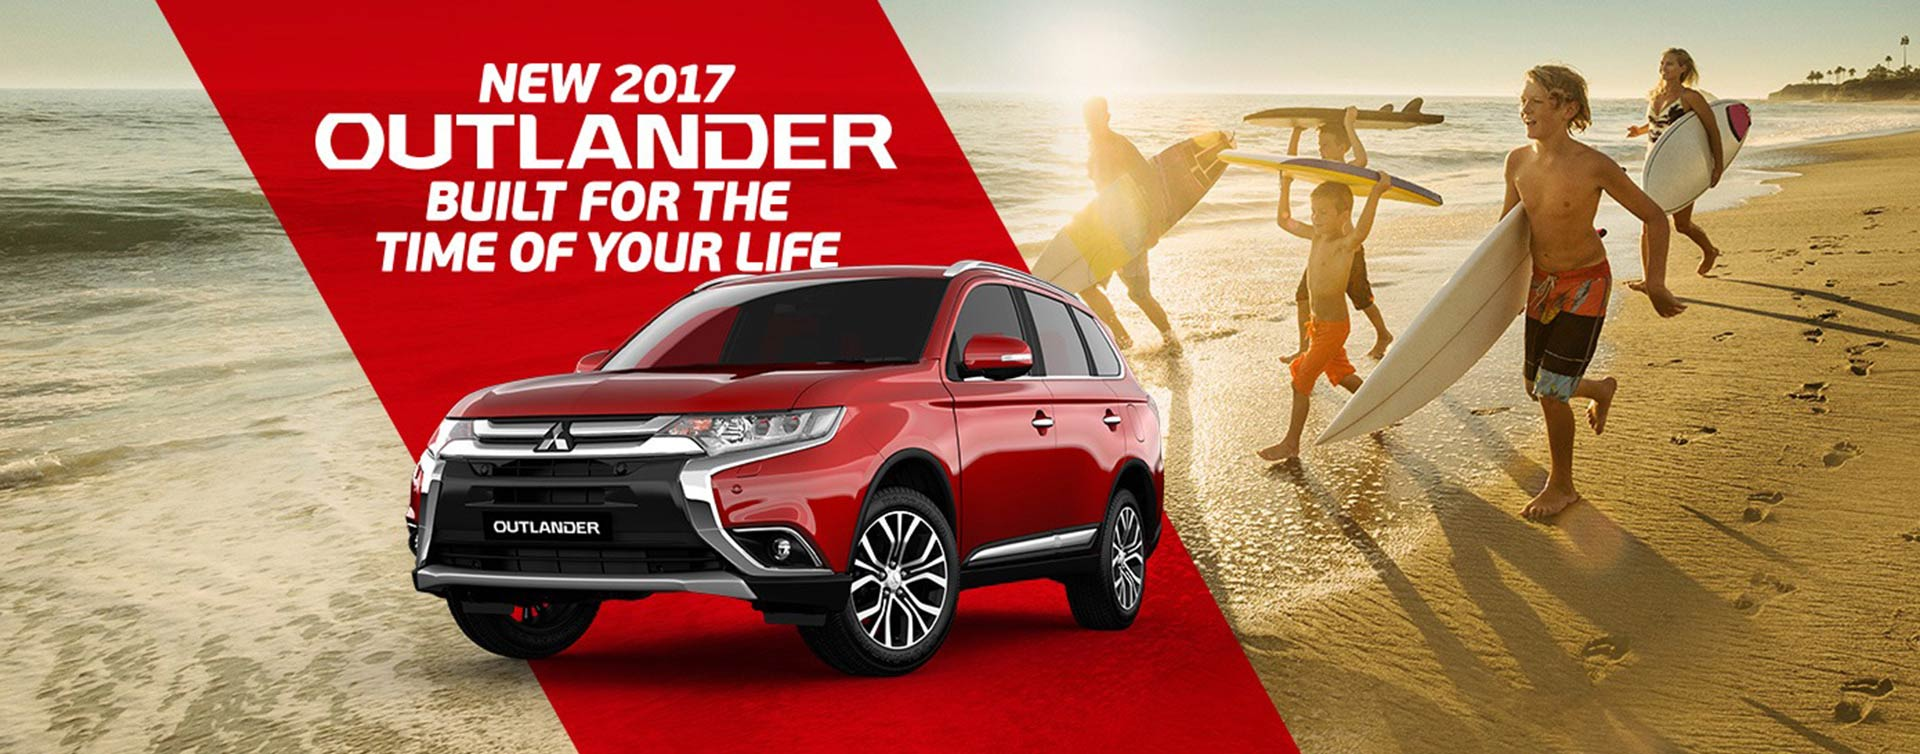 New 2017 Mitsubishi Outlander, built for the time of your life. Available at Redcliffe Mitsubishi, Brisbane.